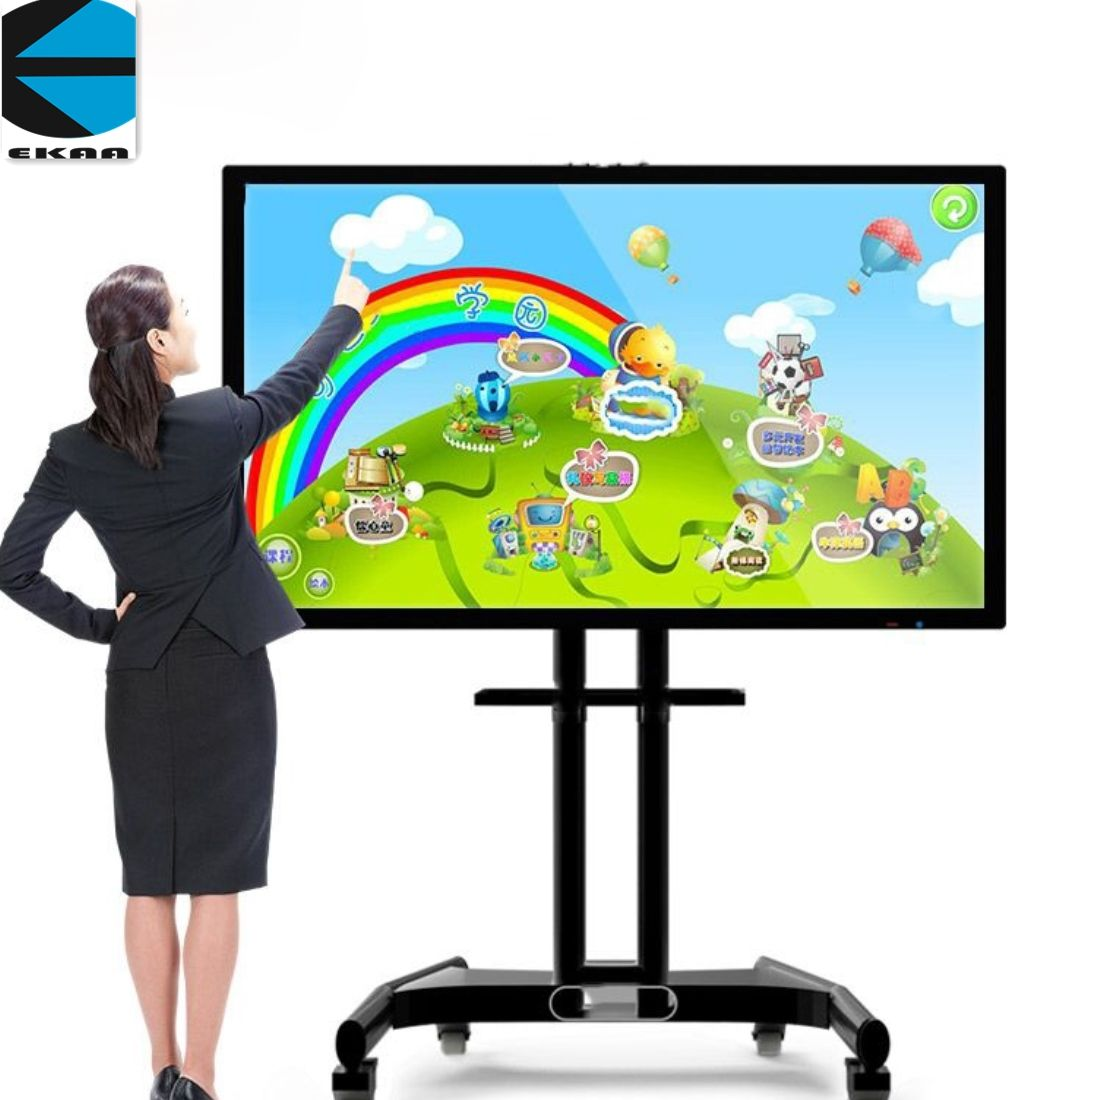 55inch led tv built-pc/full hd touch screen all in one tv pc computer (Camera ,support video conference)